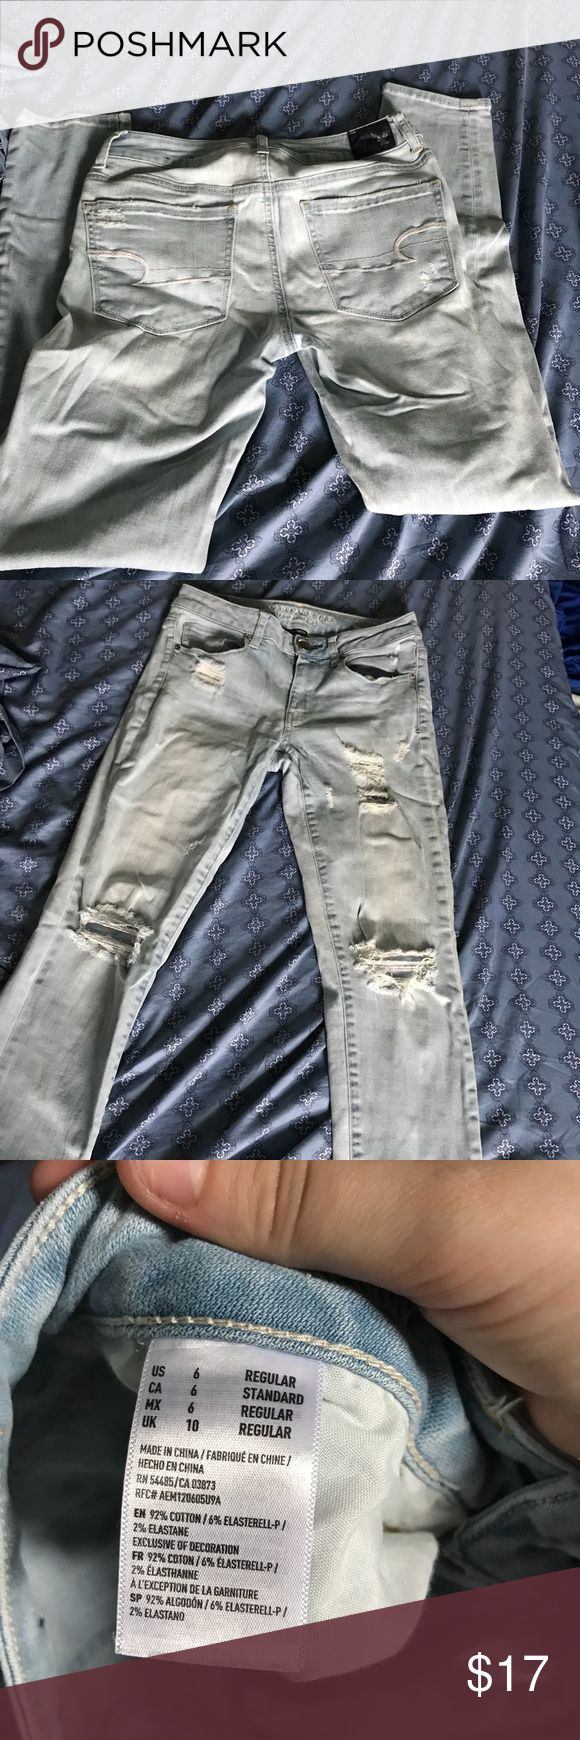 American Eagle Jeggings, Size 6 Great condition with stretchy material! Light wash denim. American Eagle Outfitters Jeans Skinny